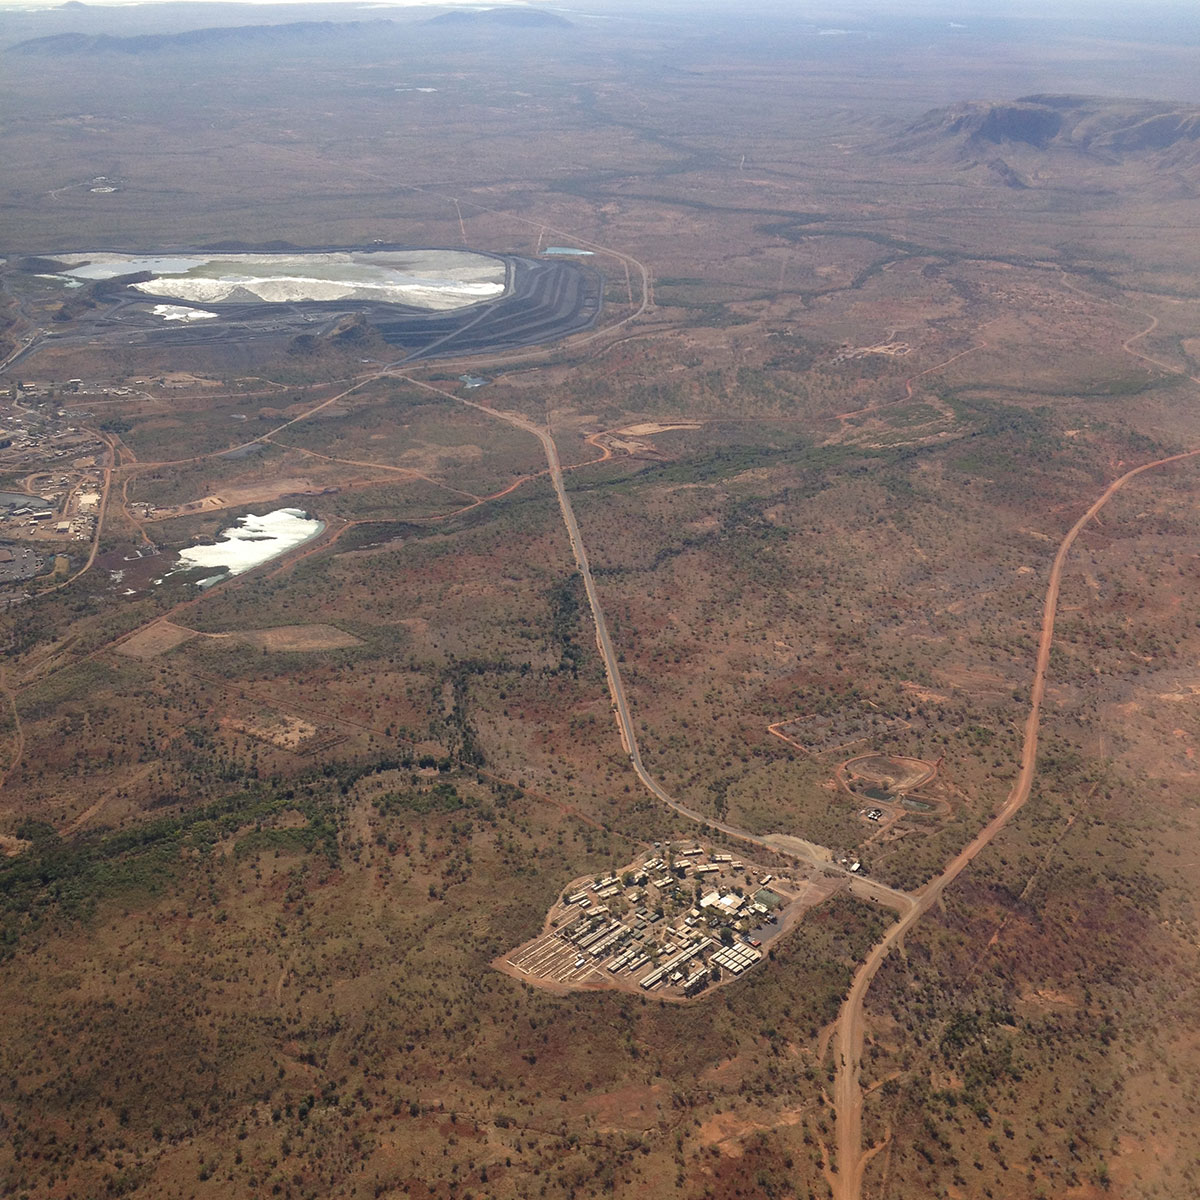 Approaching Lake Argyle Diamond Mine